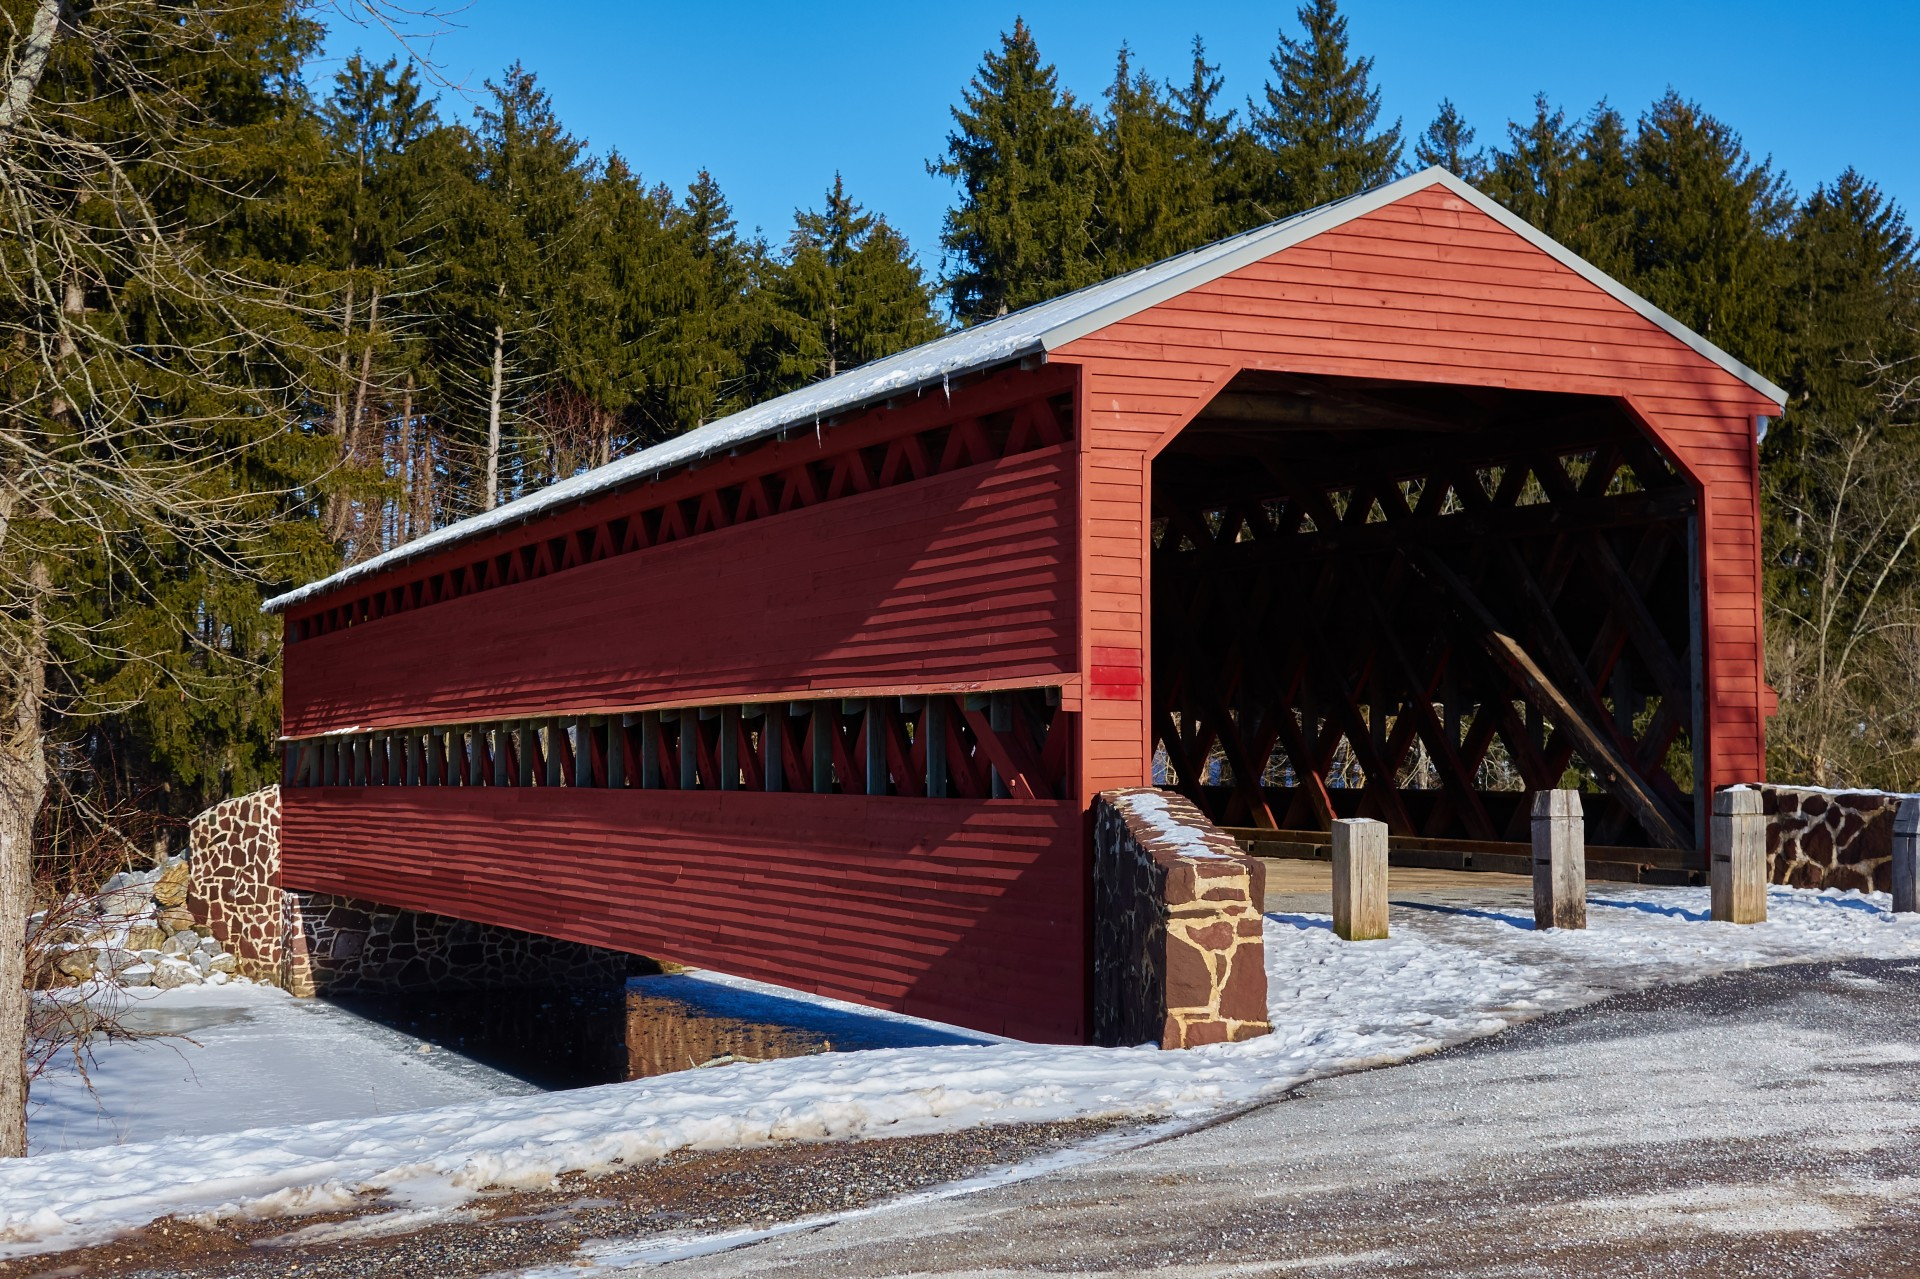 Sachs Covered Bridge - Must-Watch Tourist Attraction In Gettysburg in Pennsylvania